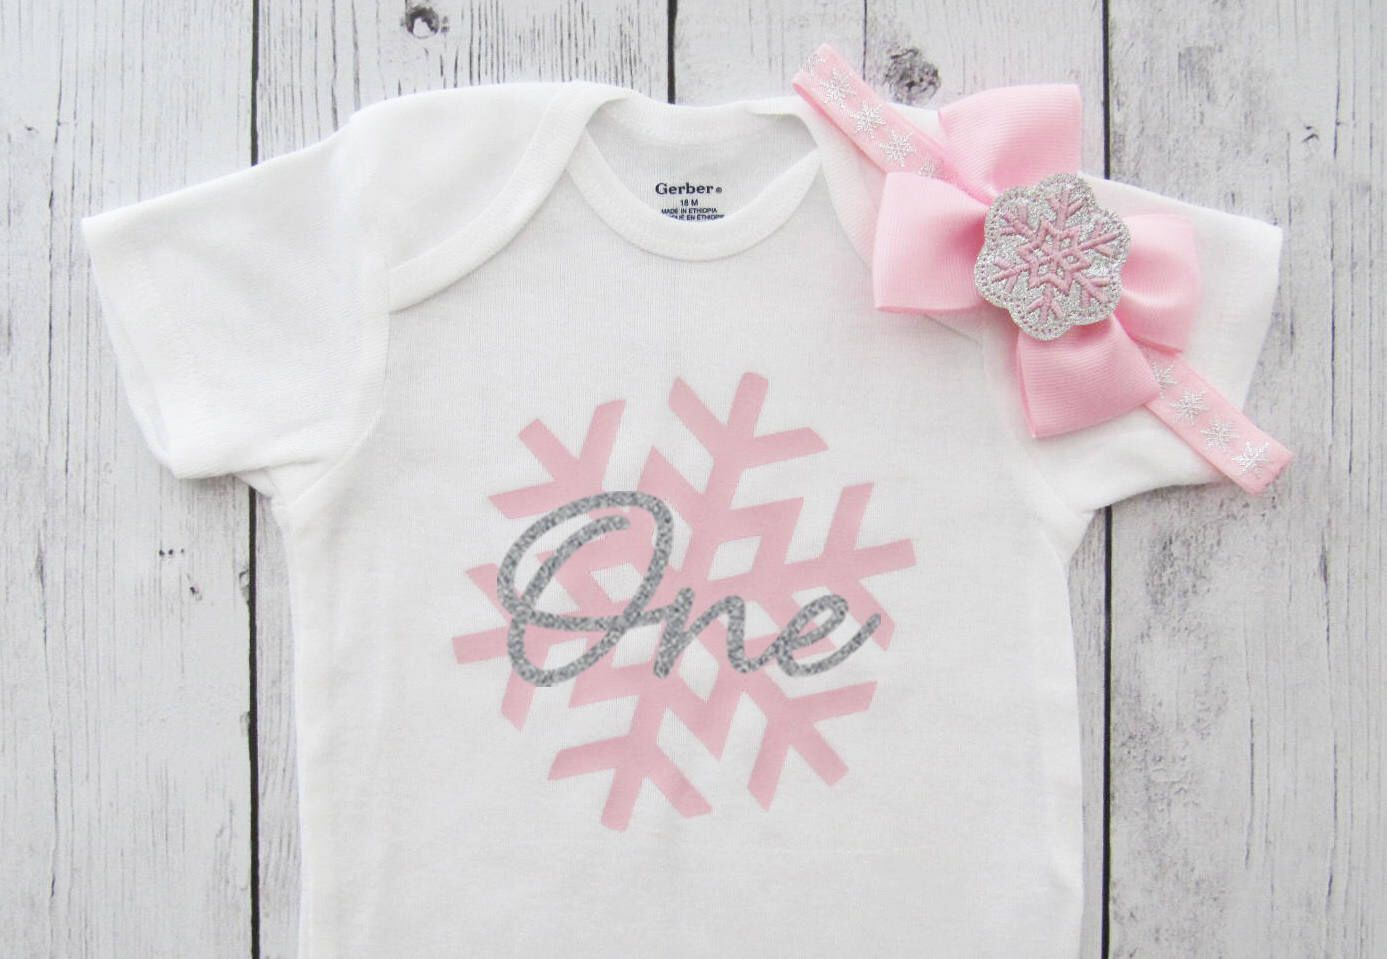 Snowflake First Birthday Onesie for Girl in pink and silver - winter onederland, snowflake shoes, snow much fun to be one